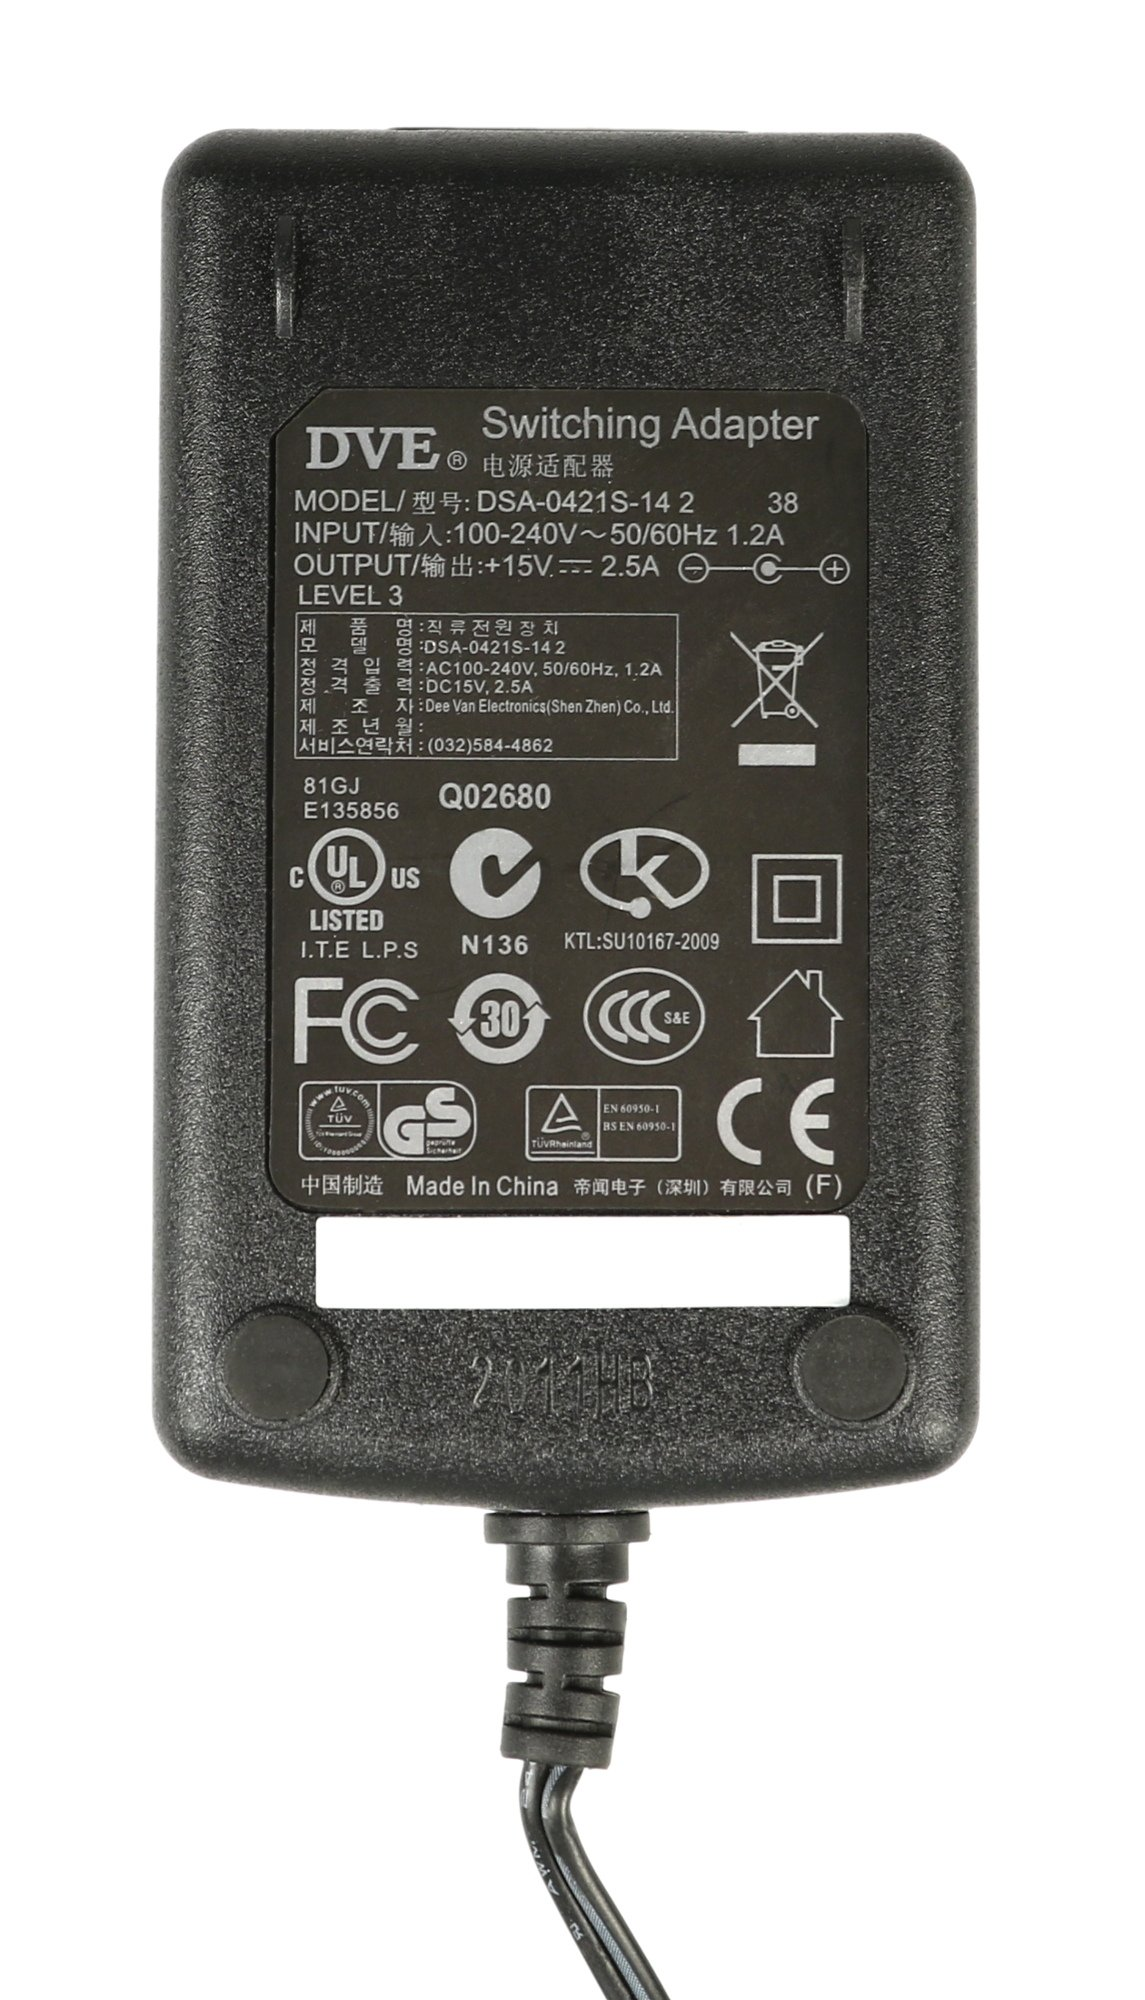 15V AC Adaptor with Cord for SP2XS, MP1IS, and MP2IS